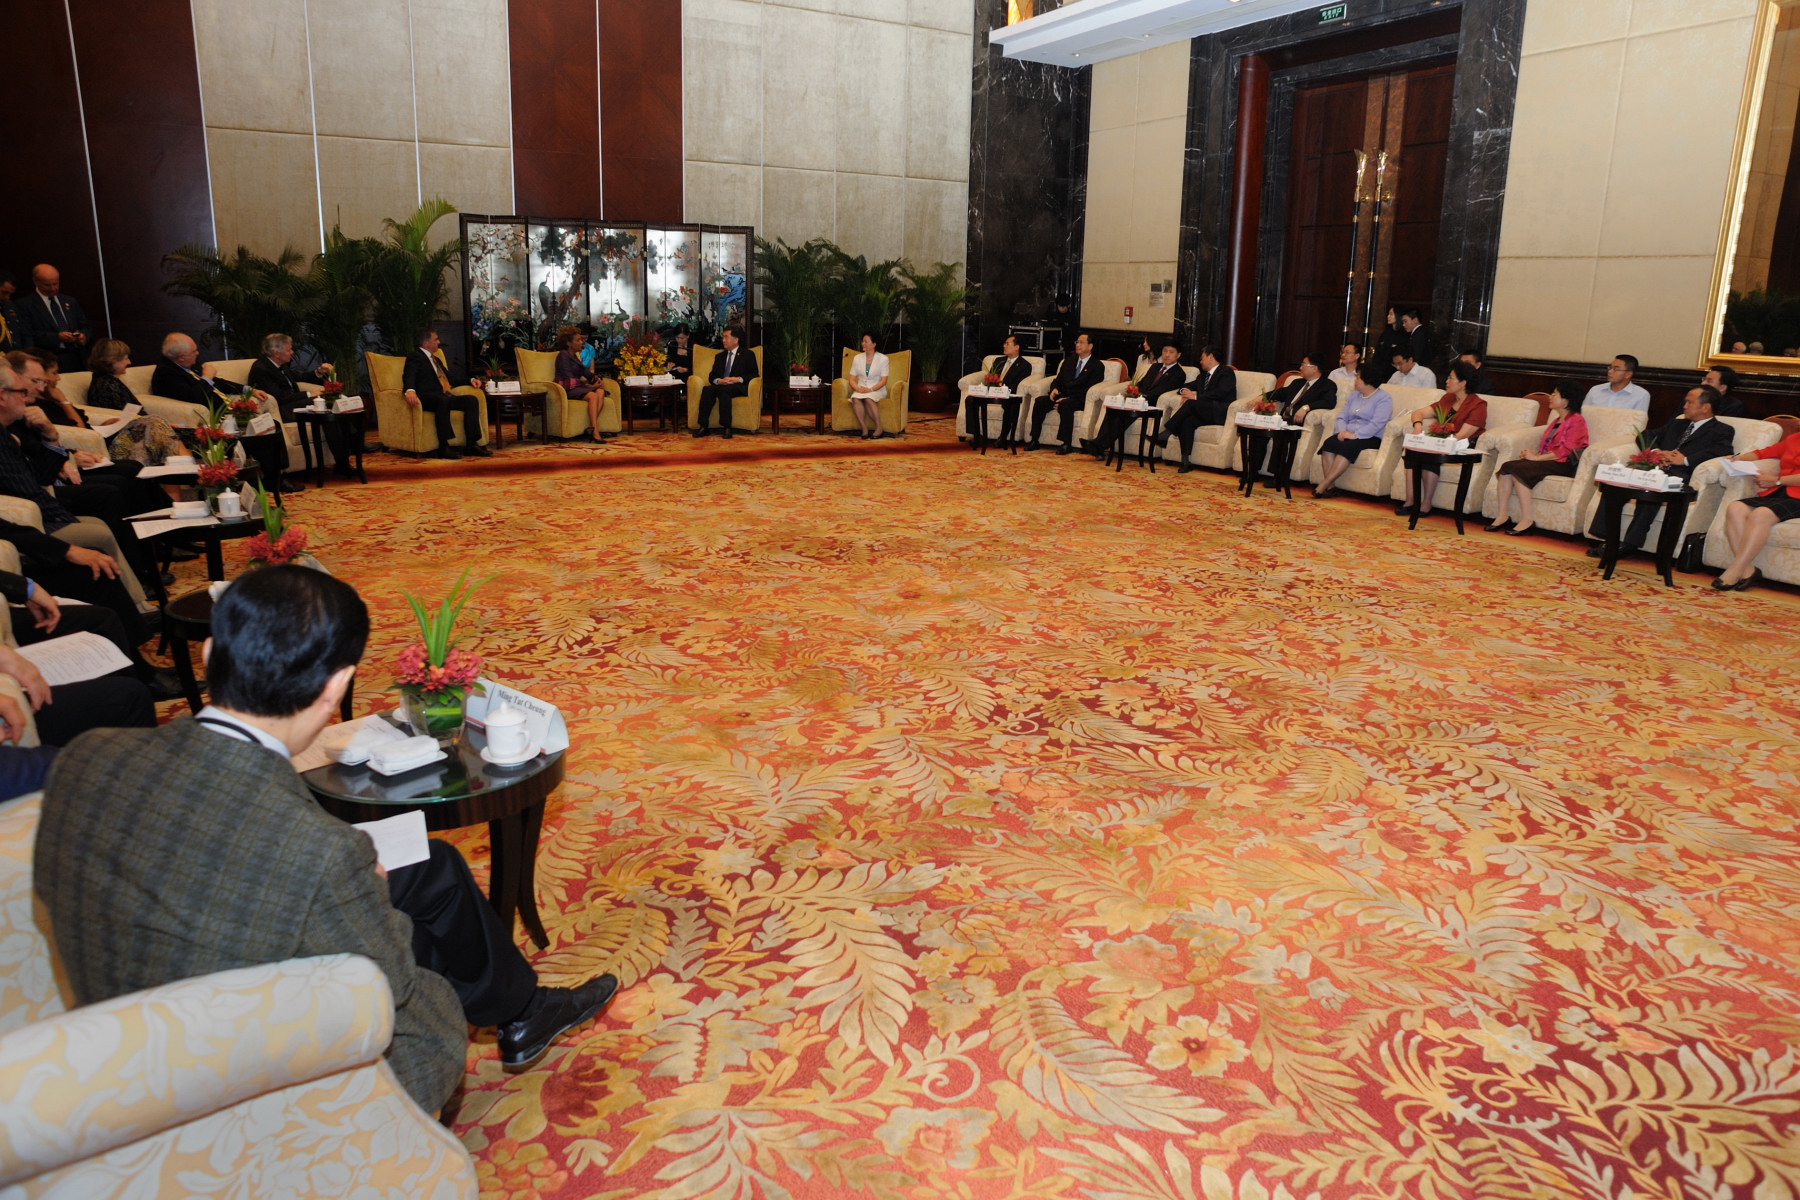 The meeting took place at Shangri-La Hotel, in Guangzhou.